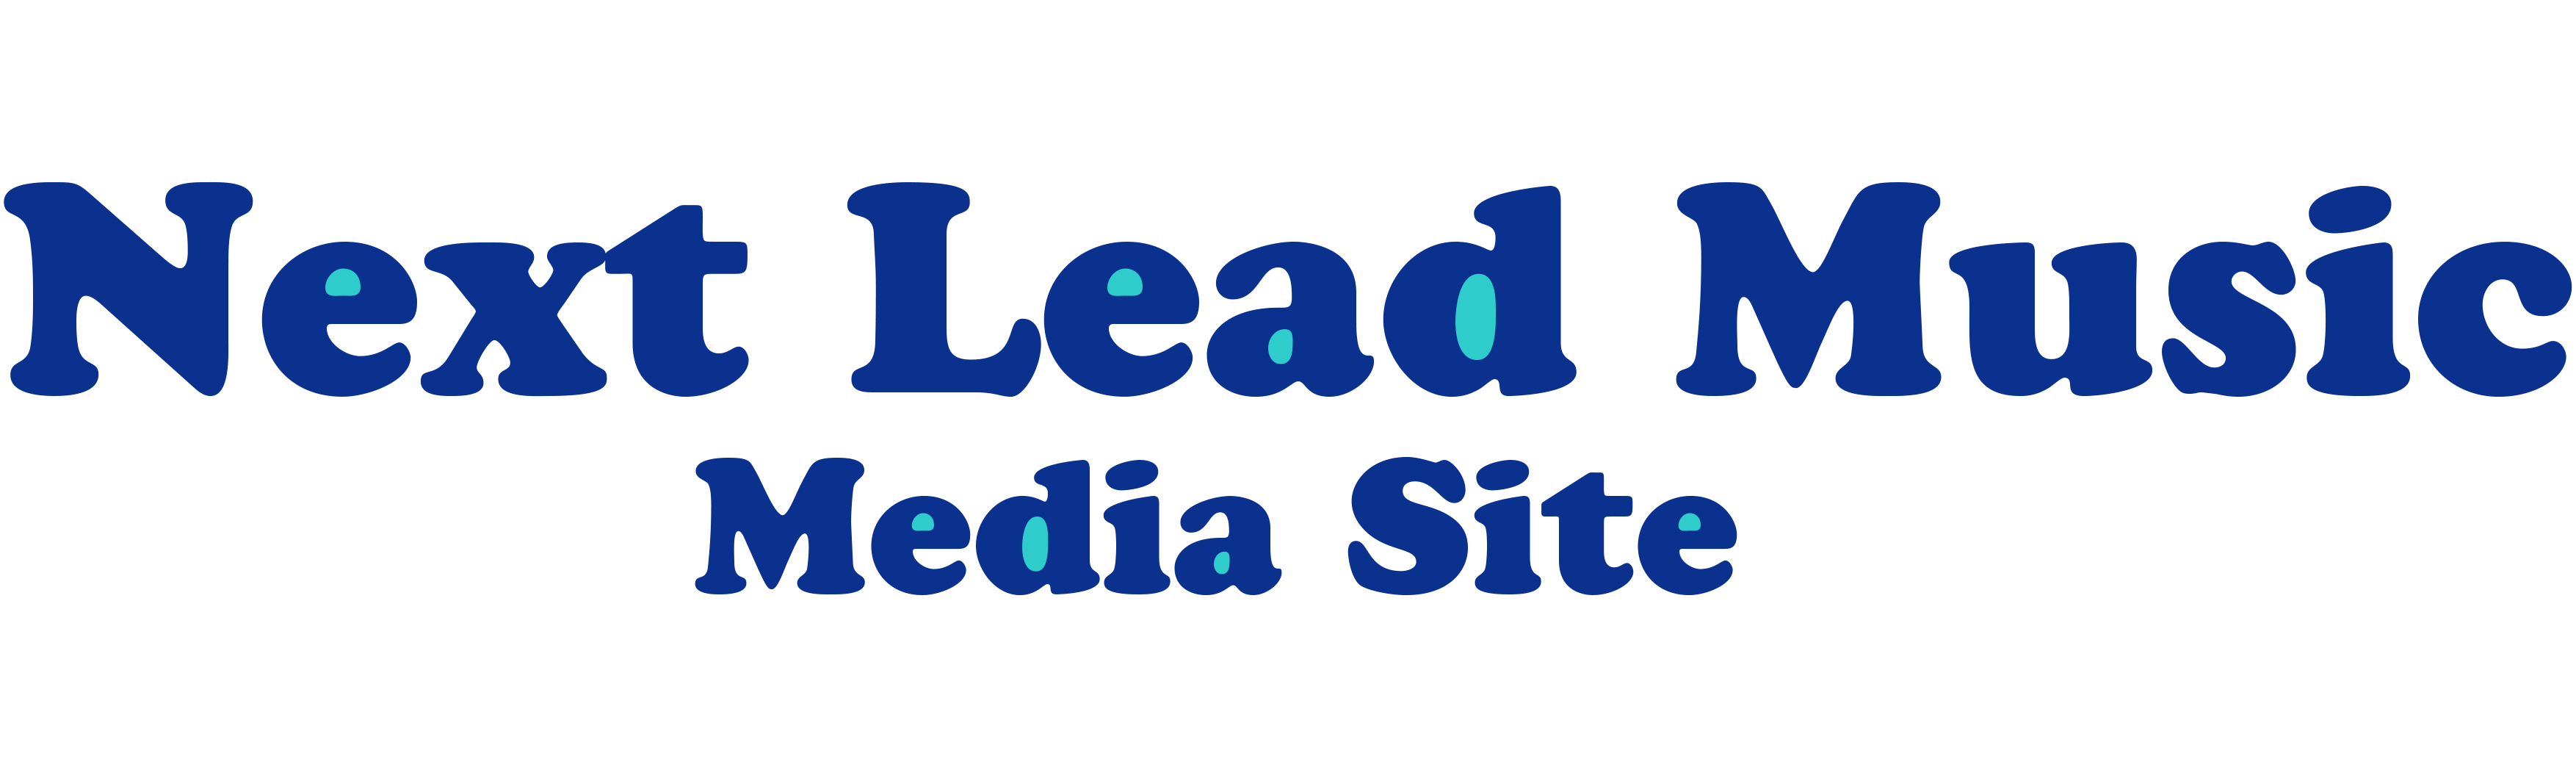 Next Lead Music Media Site